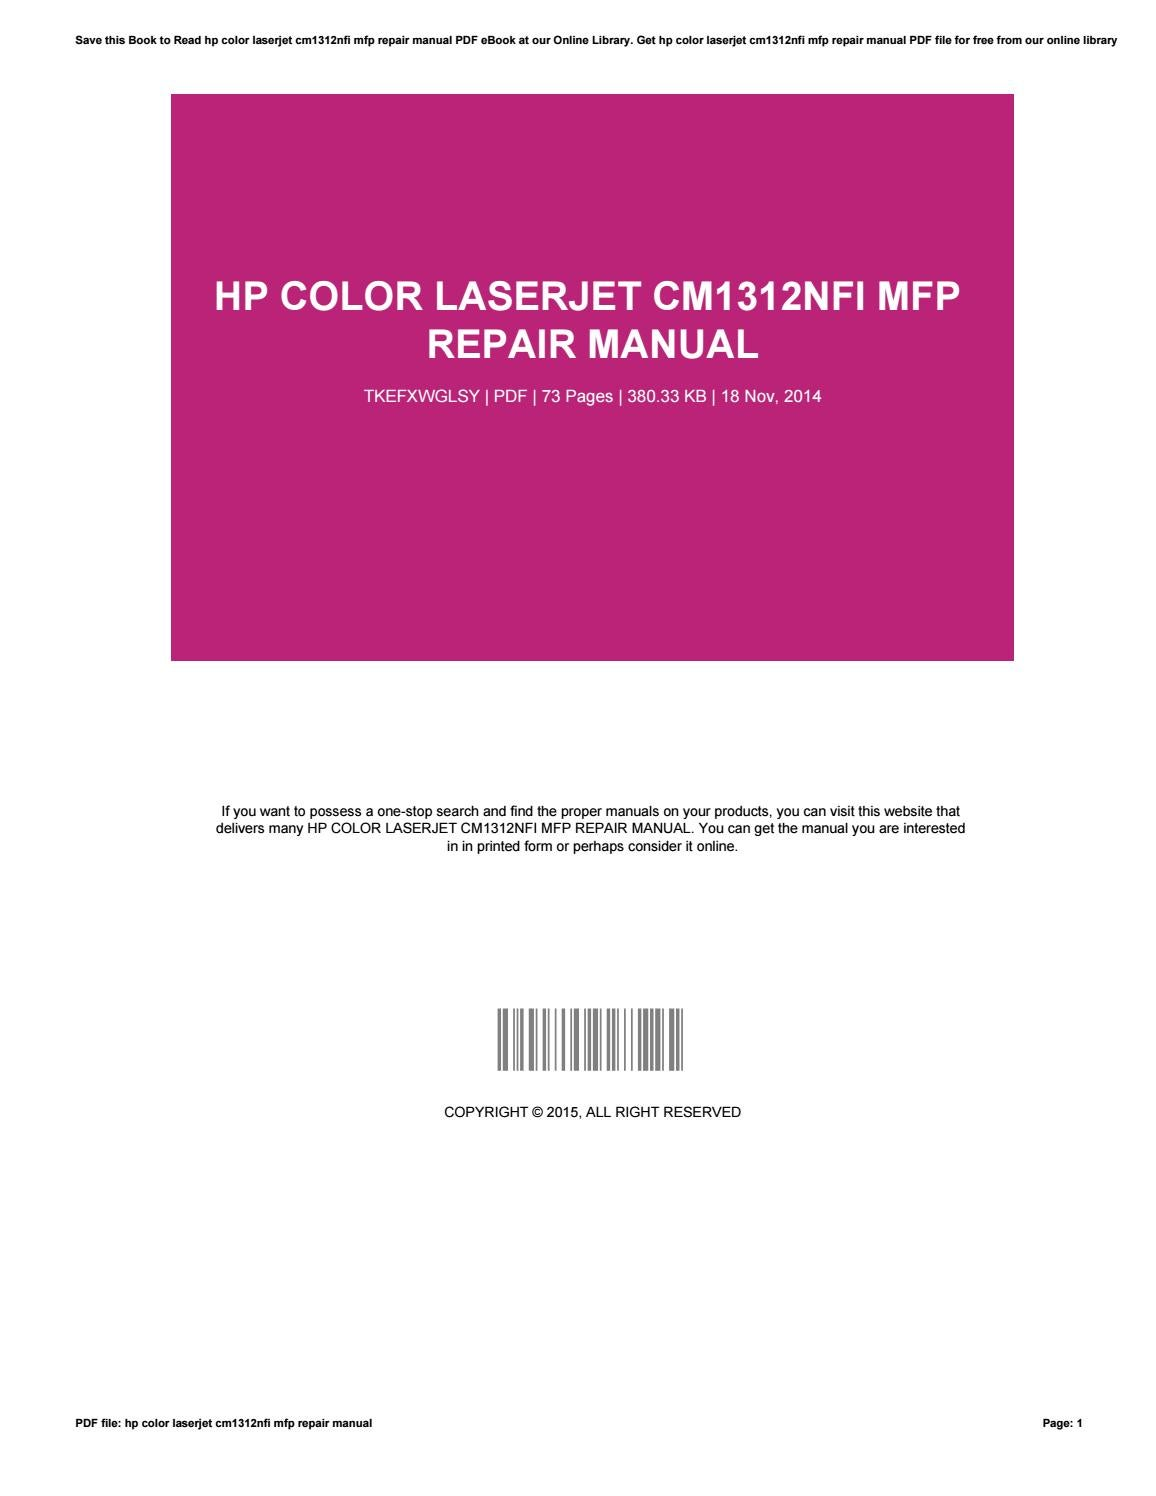 Hp color laserjet cm1312nfi mfp repair manual by RandyDantzler4285 - issuu